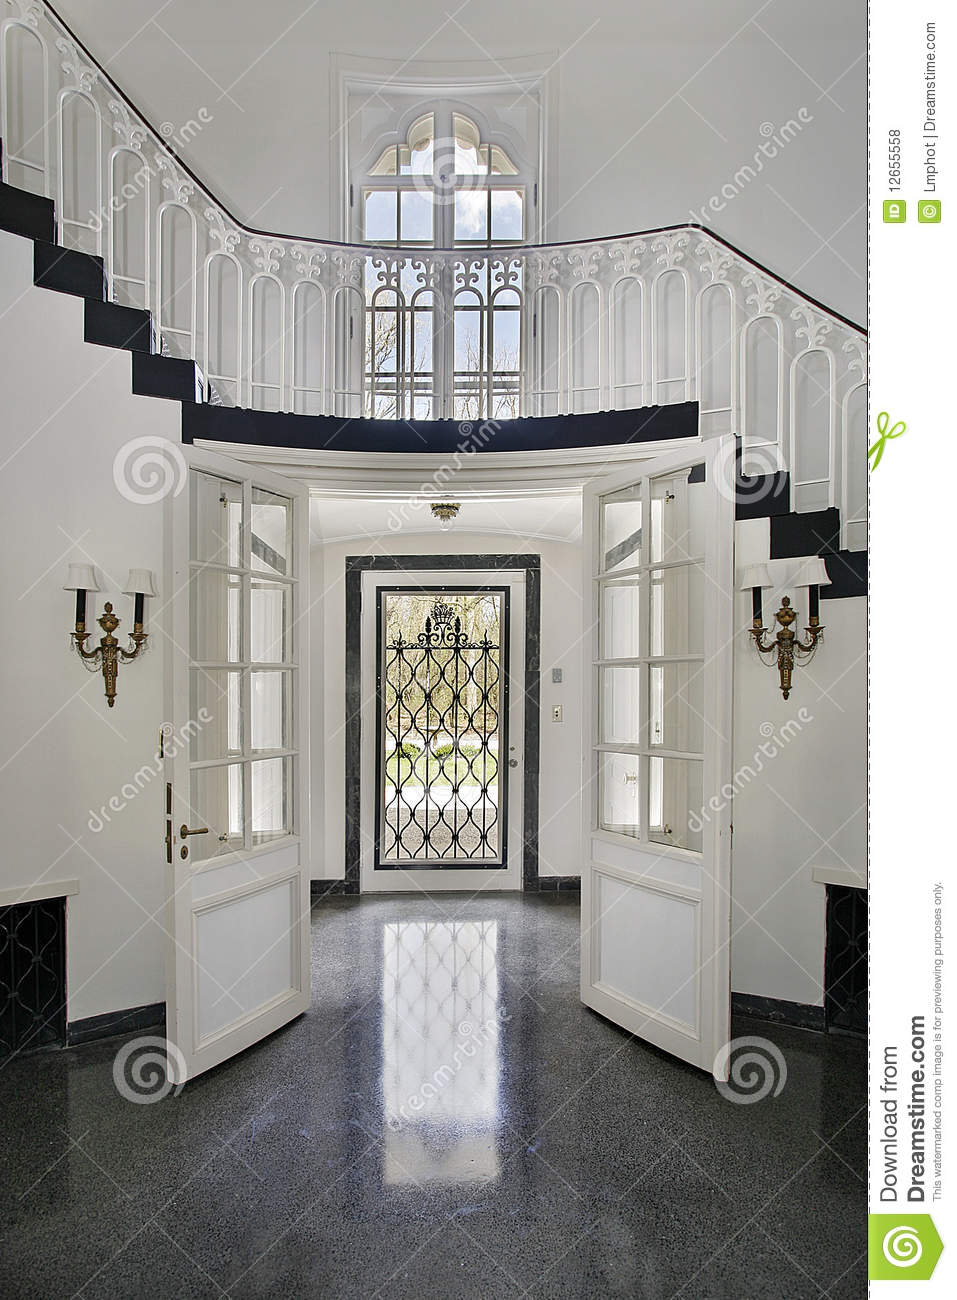 Traditional Foyer Images : Traditional foyer royalty free stock photos image